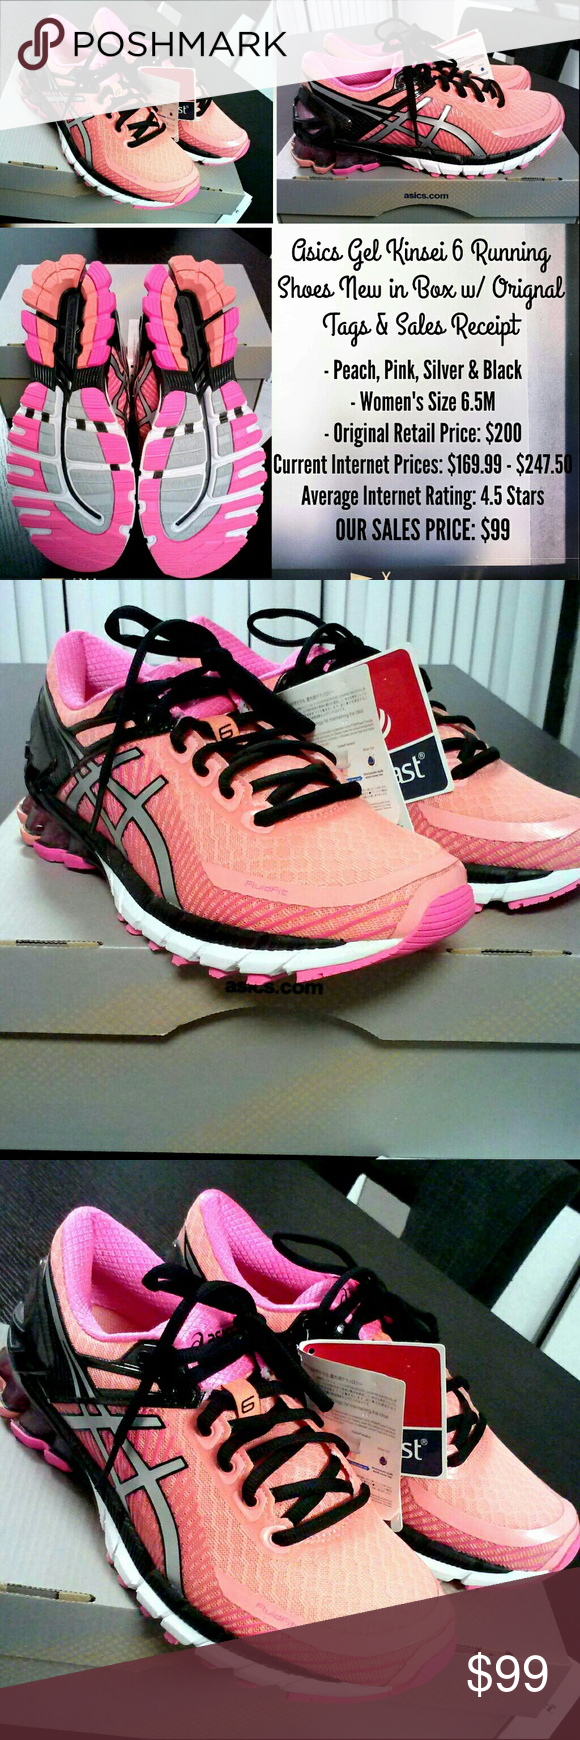 Chaussures de Box course Gel Asics Gel Kinsei 6 pour femme course , NWT New w/ tags & in Box ada887f - torquewrench.site